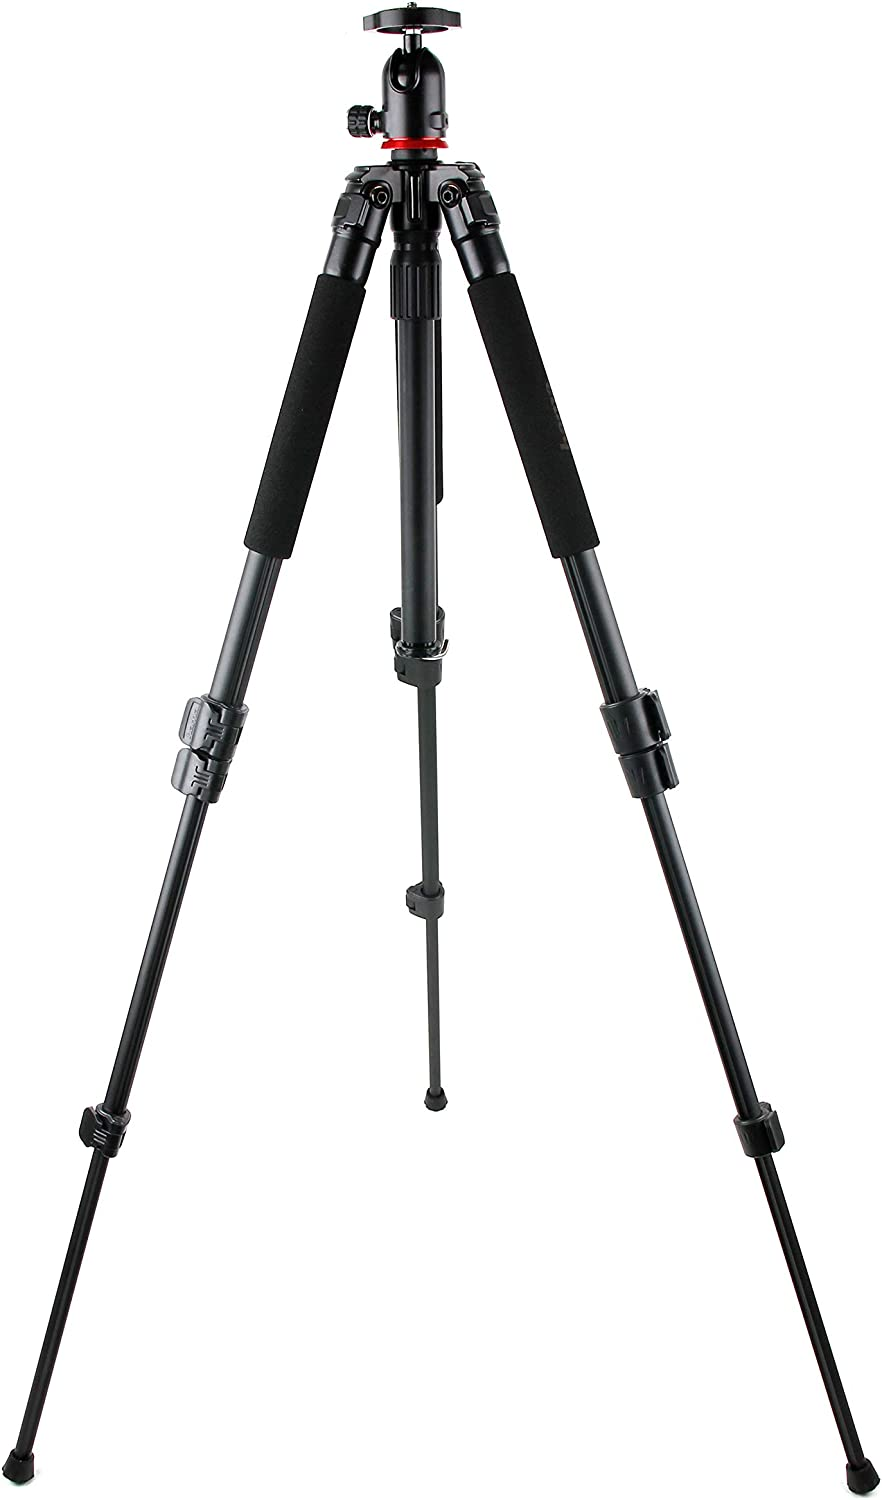 DURAGADGET Professional Sturdy Tripod w// 3D Ball Head XS9 HD /& Replay XD720 HC-V500 //Polaroid XS100 Extreme Edition XS7 HD Compatible with Panasonic HC-V100